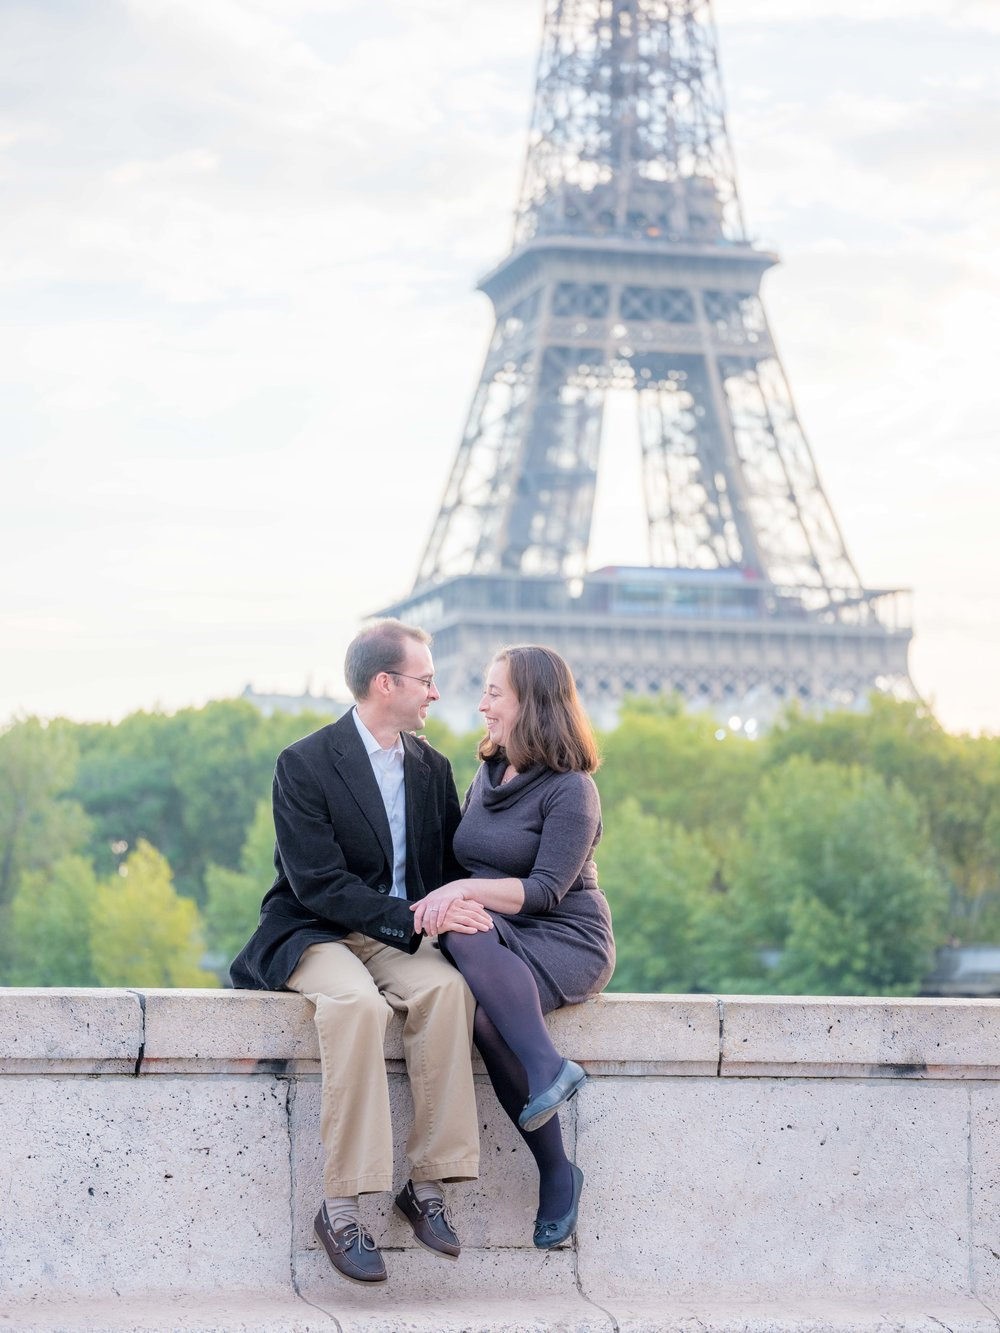 surprise proposal at eiffel tower paris